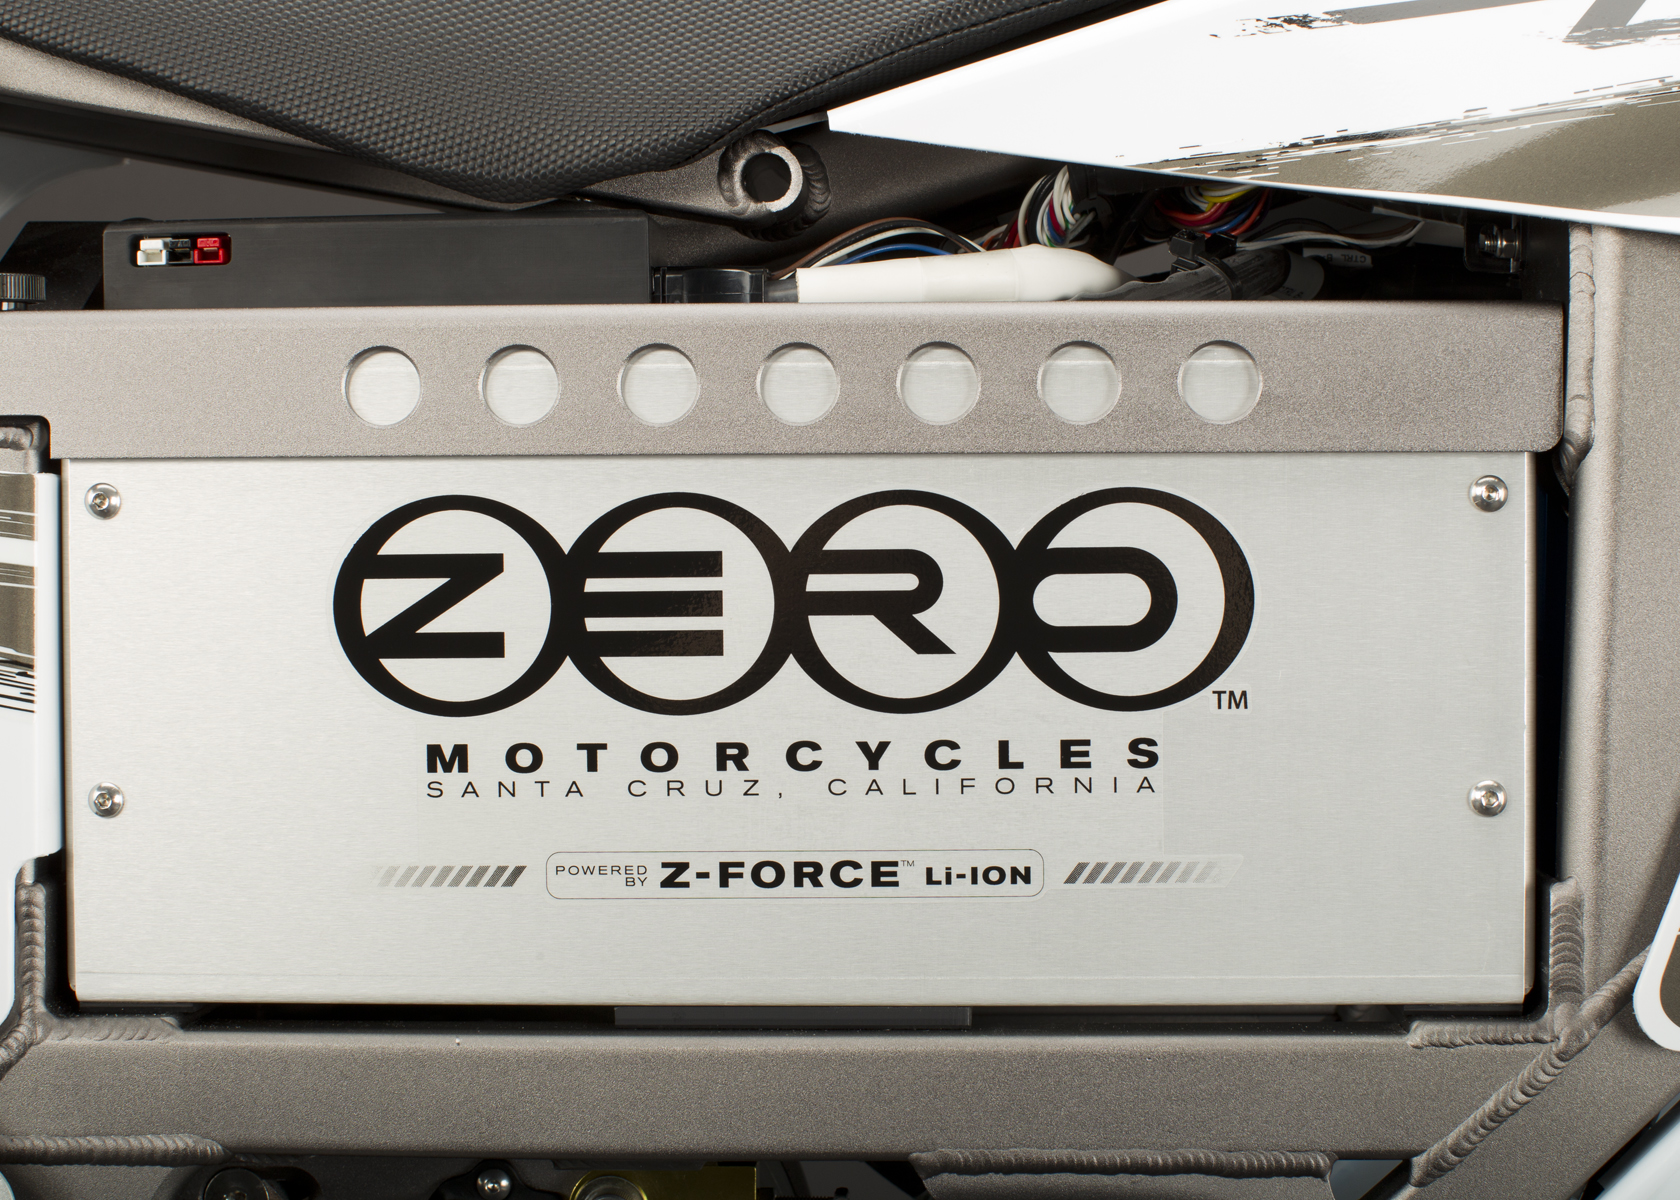 2011 Zero X Electric Motorcycle: Battery